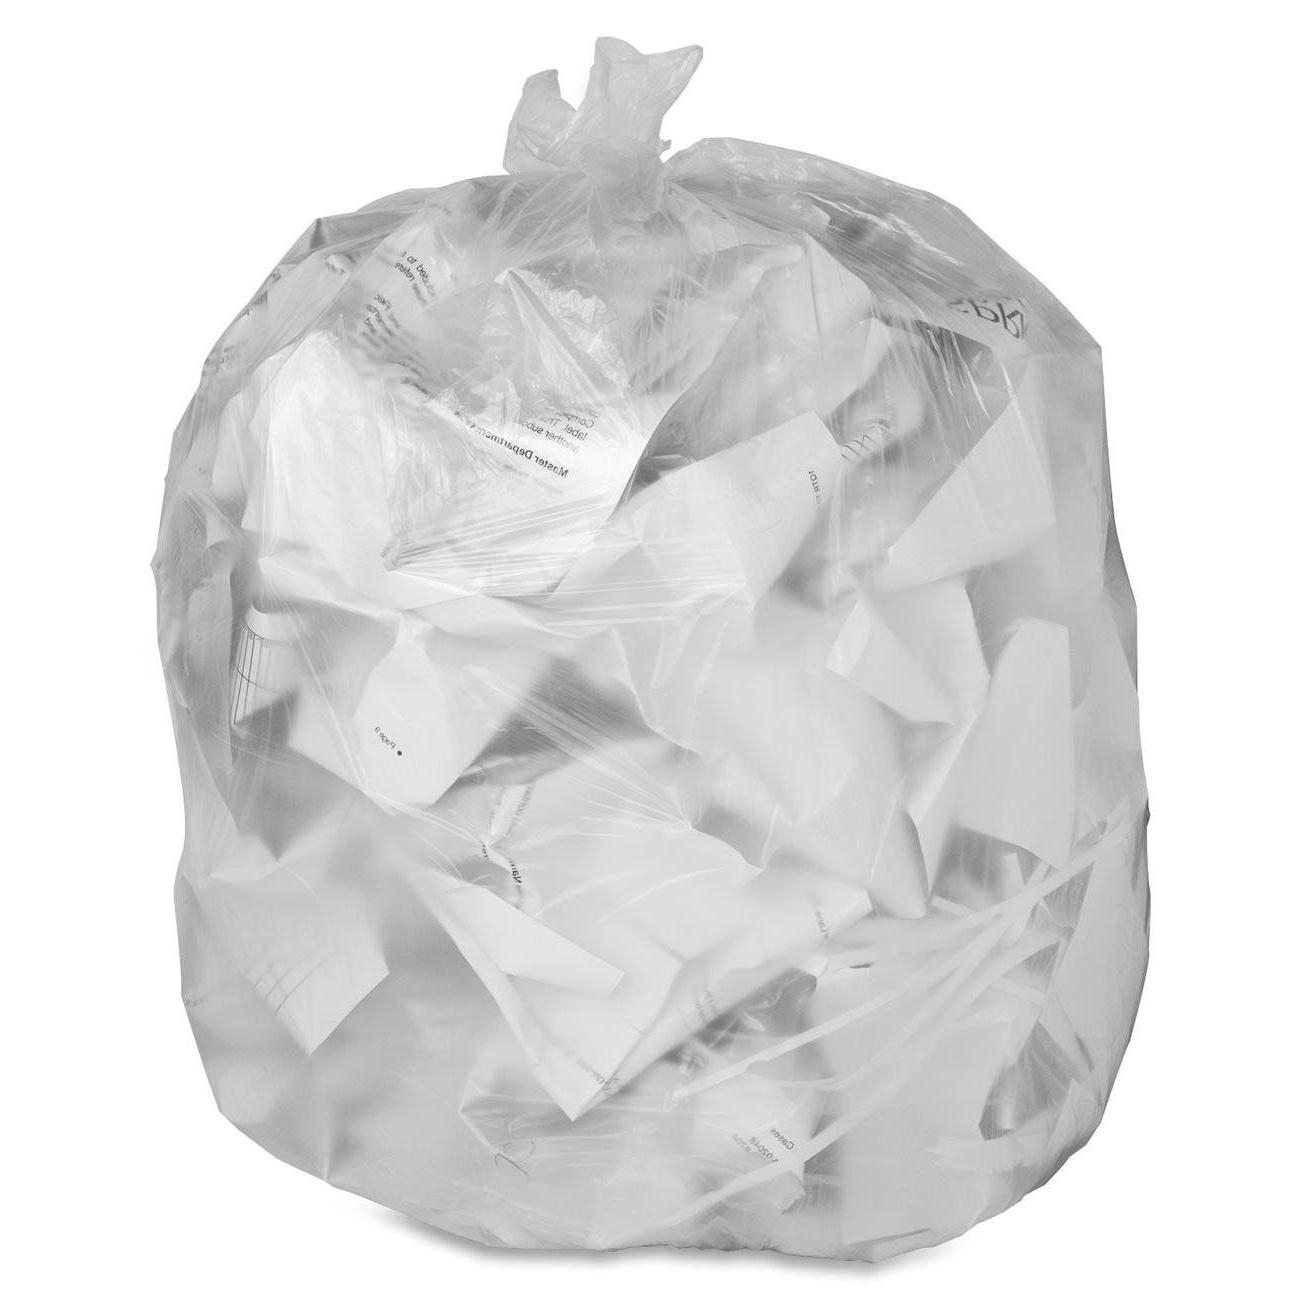 1000 7-10 Gallon High Density Bags Garbage Can Liners Clear